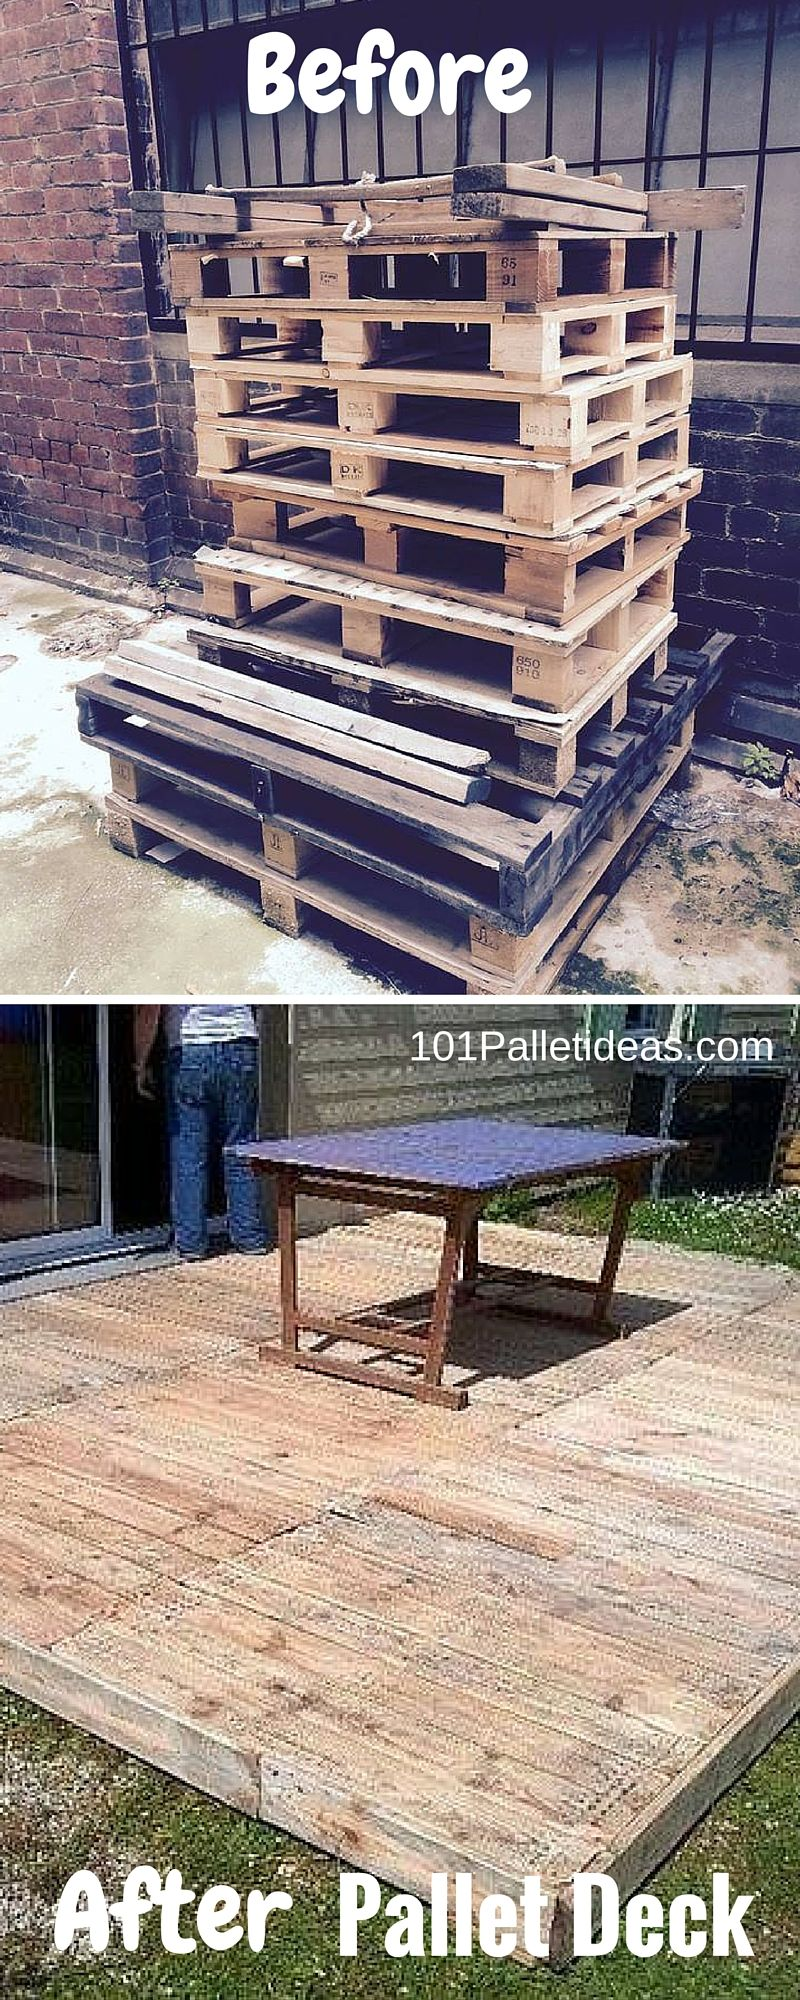 This DIY pallet deck flooring idea for